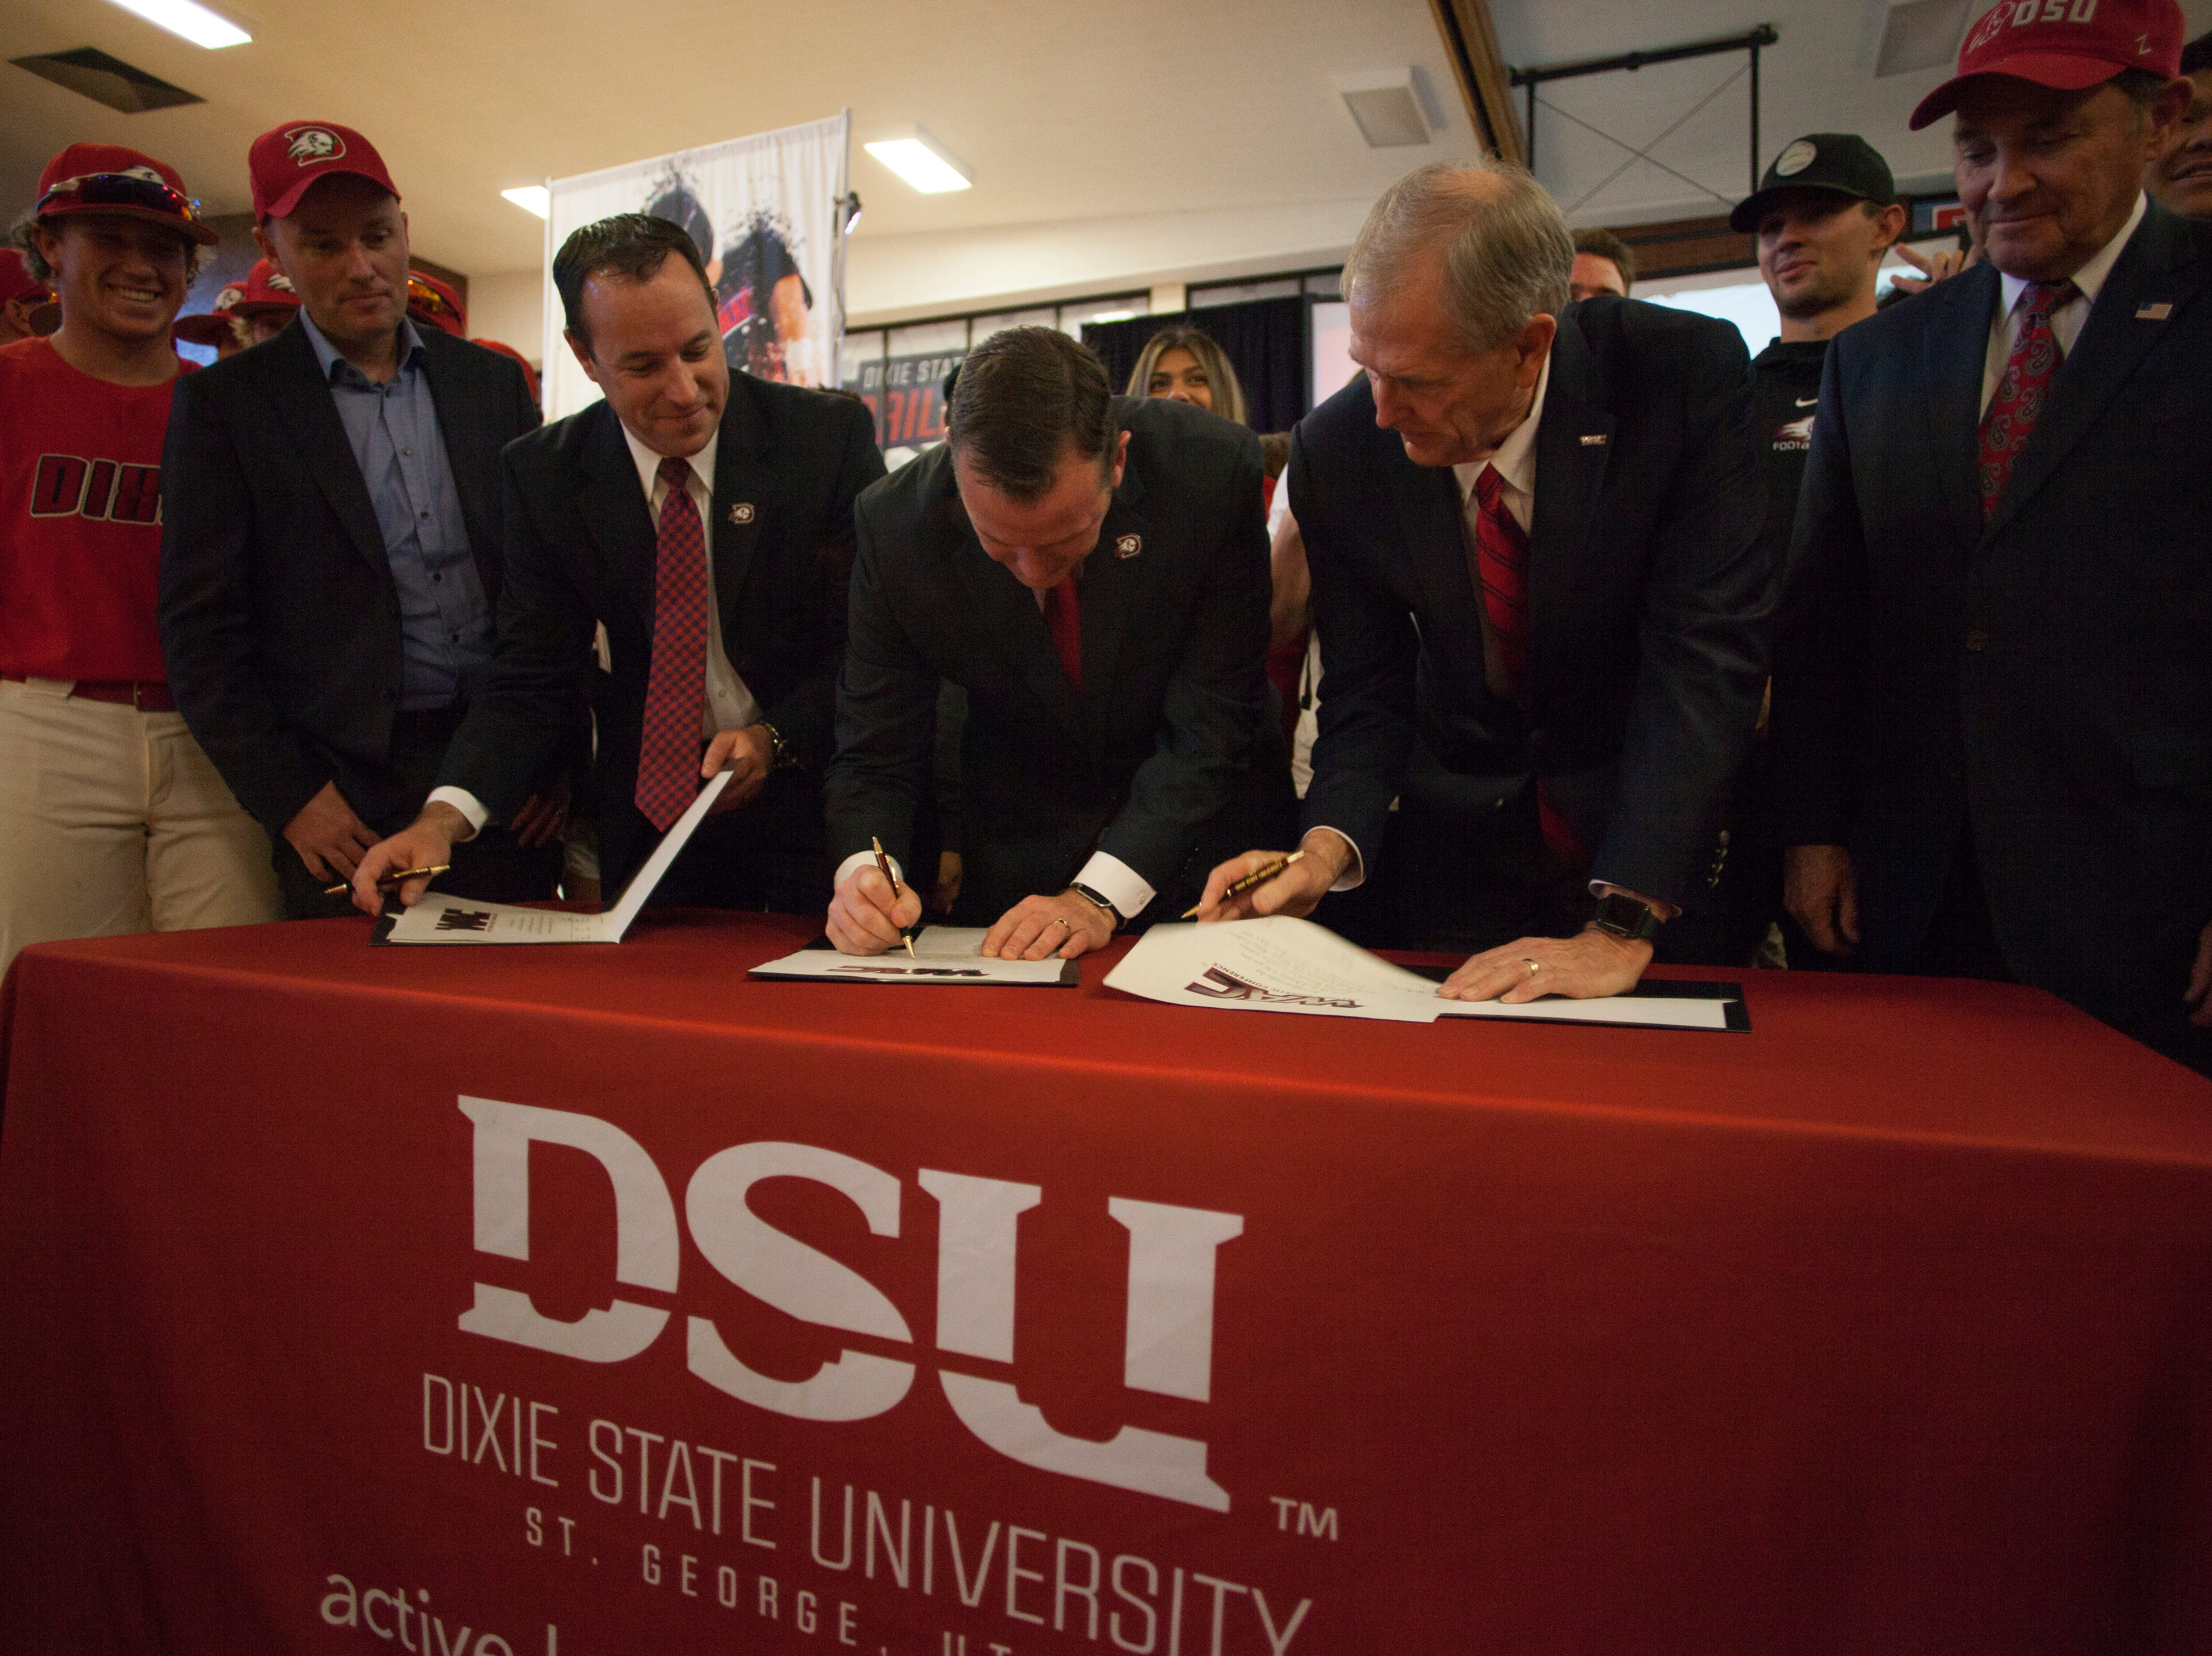 Dixie State University joins the Western Athletic Conference and becomes a division 1 school Friday, Jan. 11, 2019